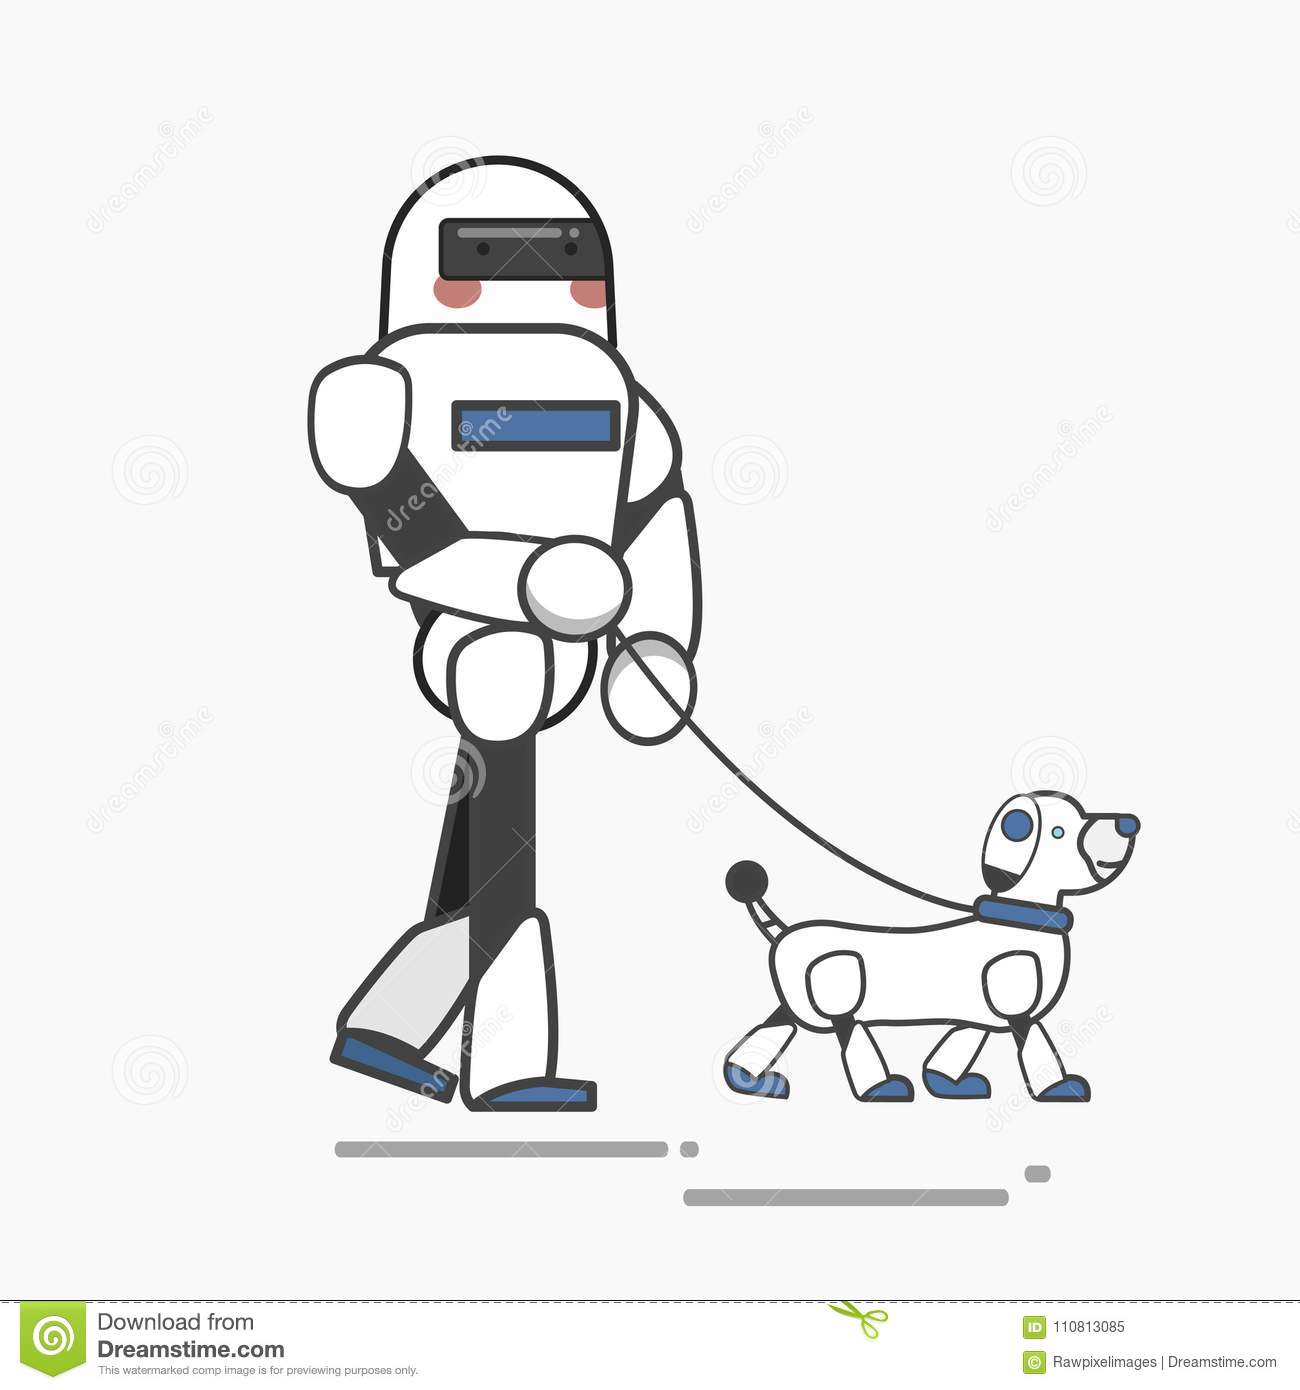 Illustration Of Robot Taking Robotic Dog For A Walk Stock